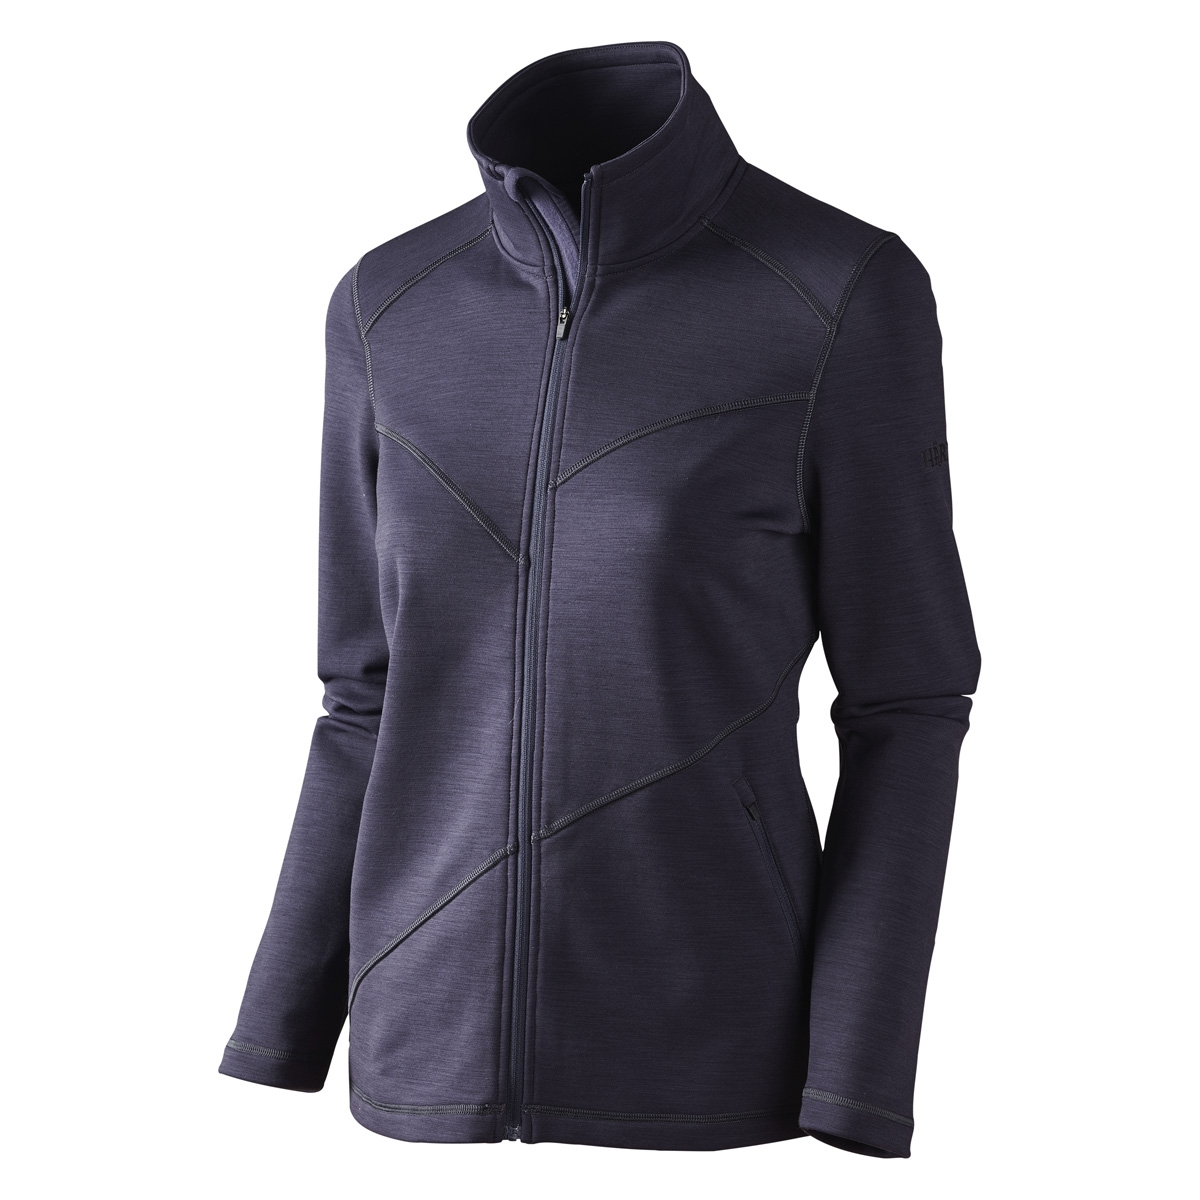 Image of Harkila Disa Lady Full Zip Fleece - Purple Melange 05da2b7a53a77